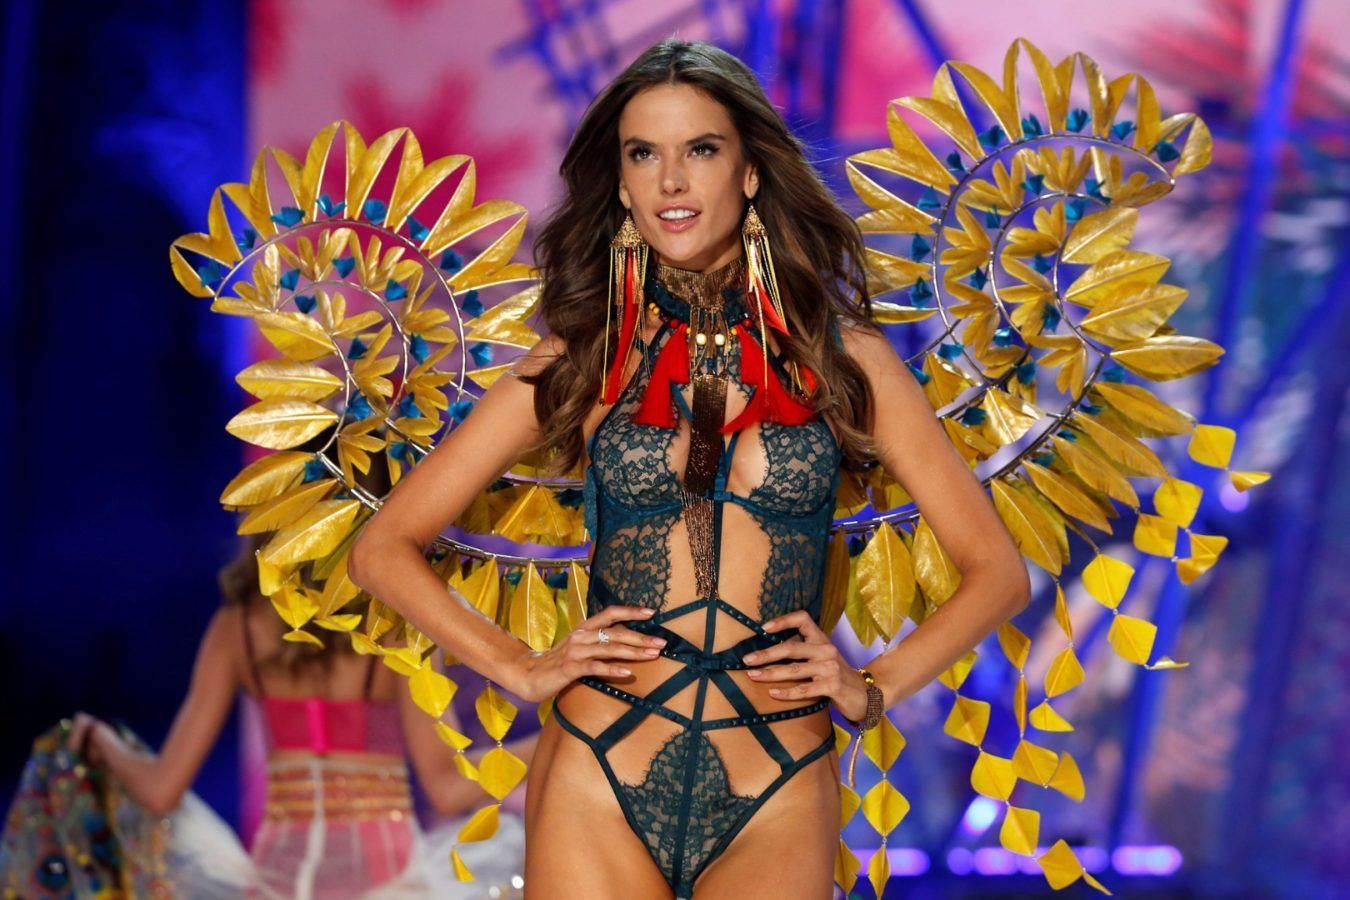 Alessandra Ambrosio Vitoria Secret 2016